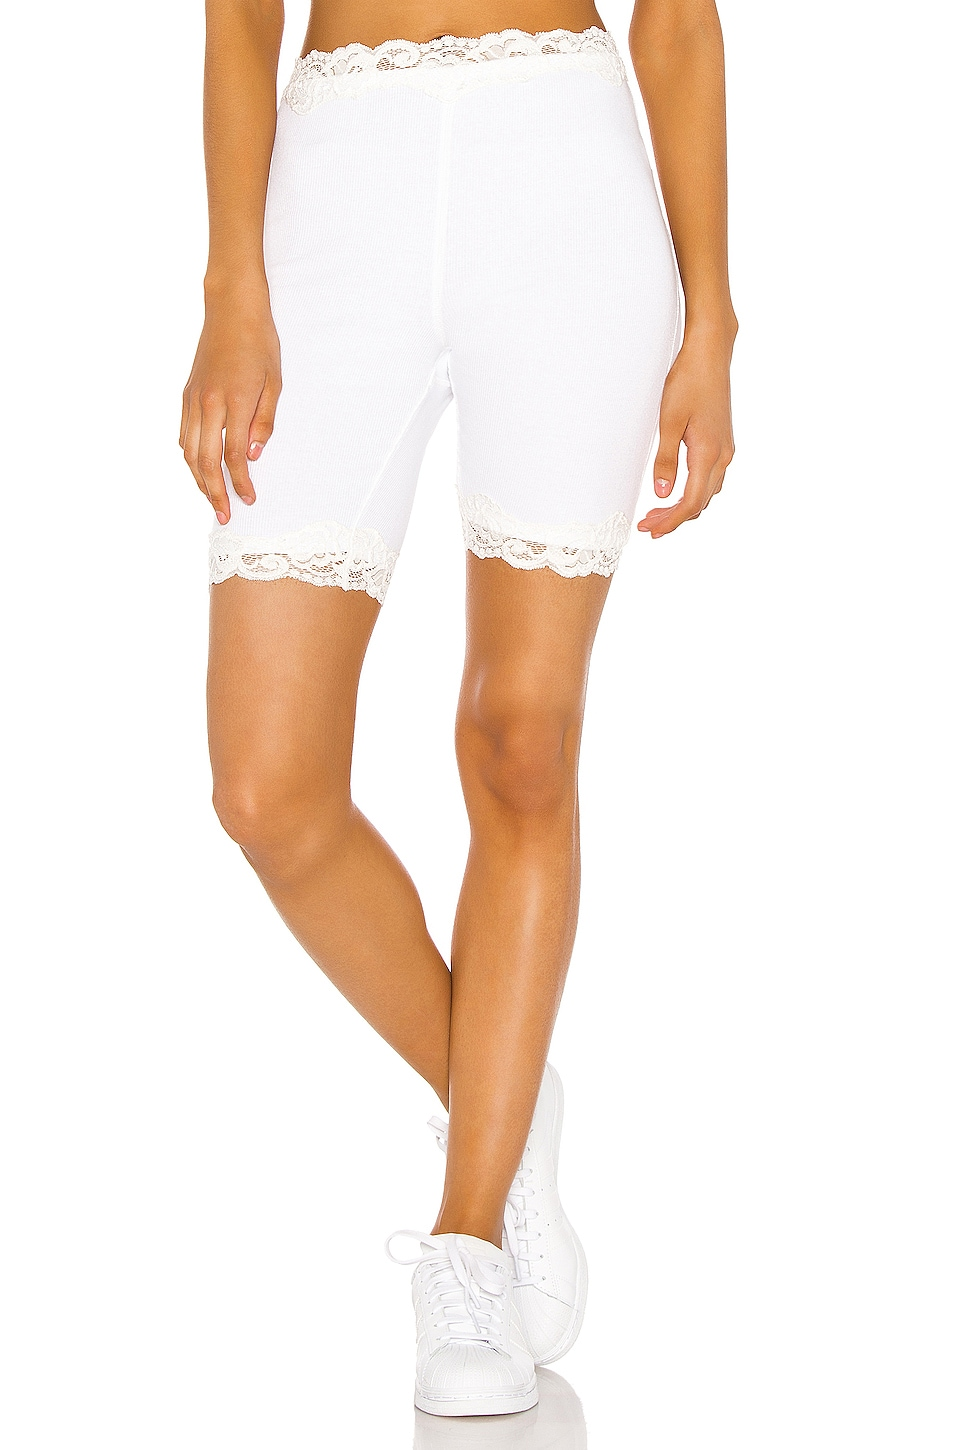 Free People Harlow Bike Short in Ivory